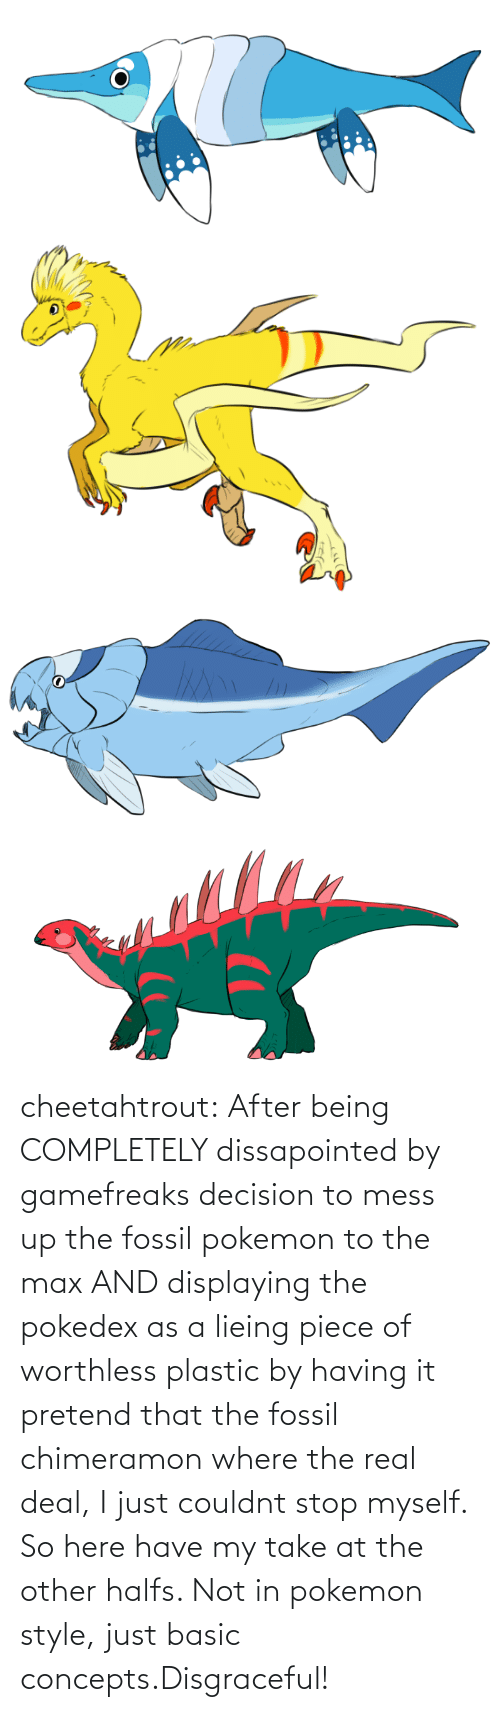 Pokemon, Tumblr, and Blog: cheetahtrout:  After being COMPLETELY dissapointed by gamefreaks decision to mess up the fossil pokemon to the max AND displaying the pokedex as a lieing piece of worthless plastic by having it pretend that the fossil chimeramon where the real deal, I just couldnt stop myself. So here have my take at the other halfs. Not in pokemon style, just basic concepts.Disgraceful!